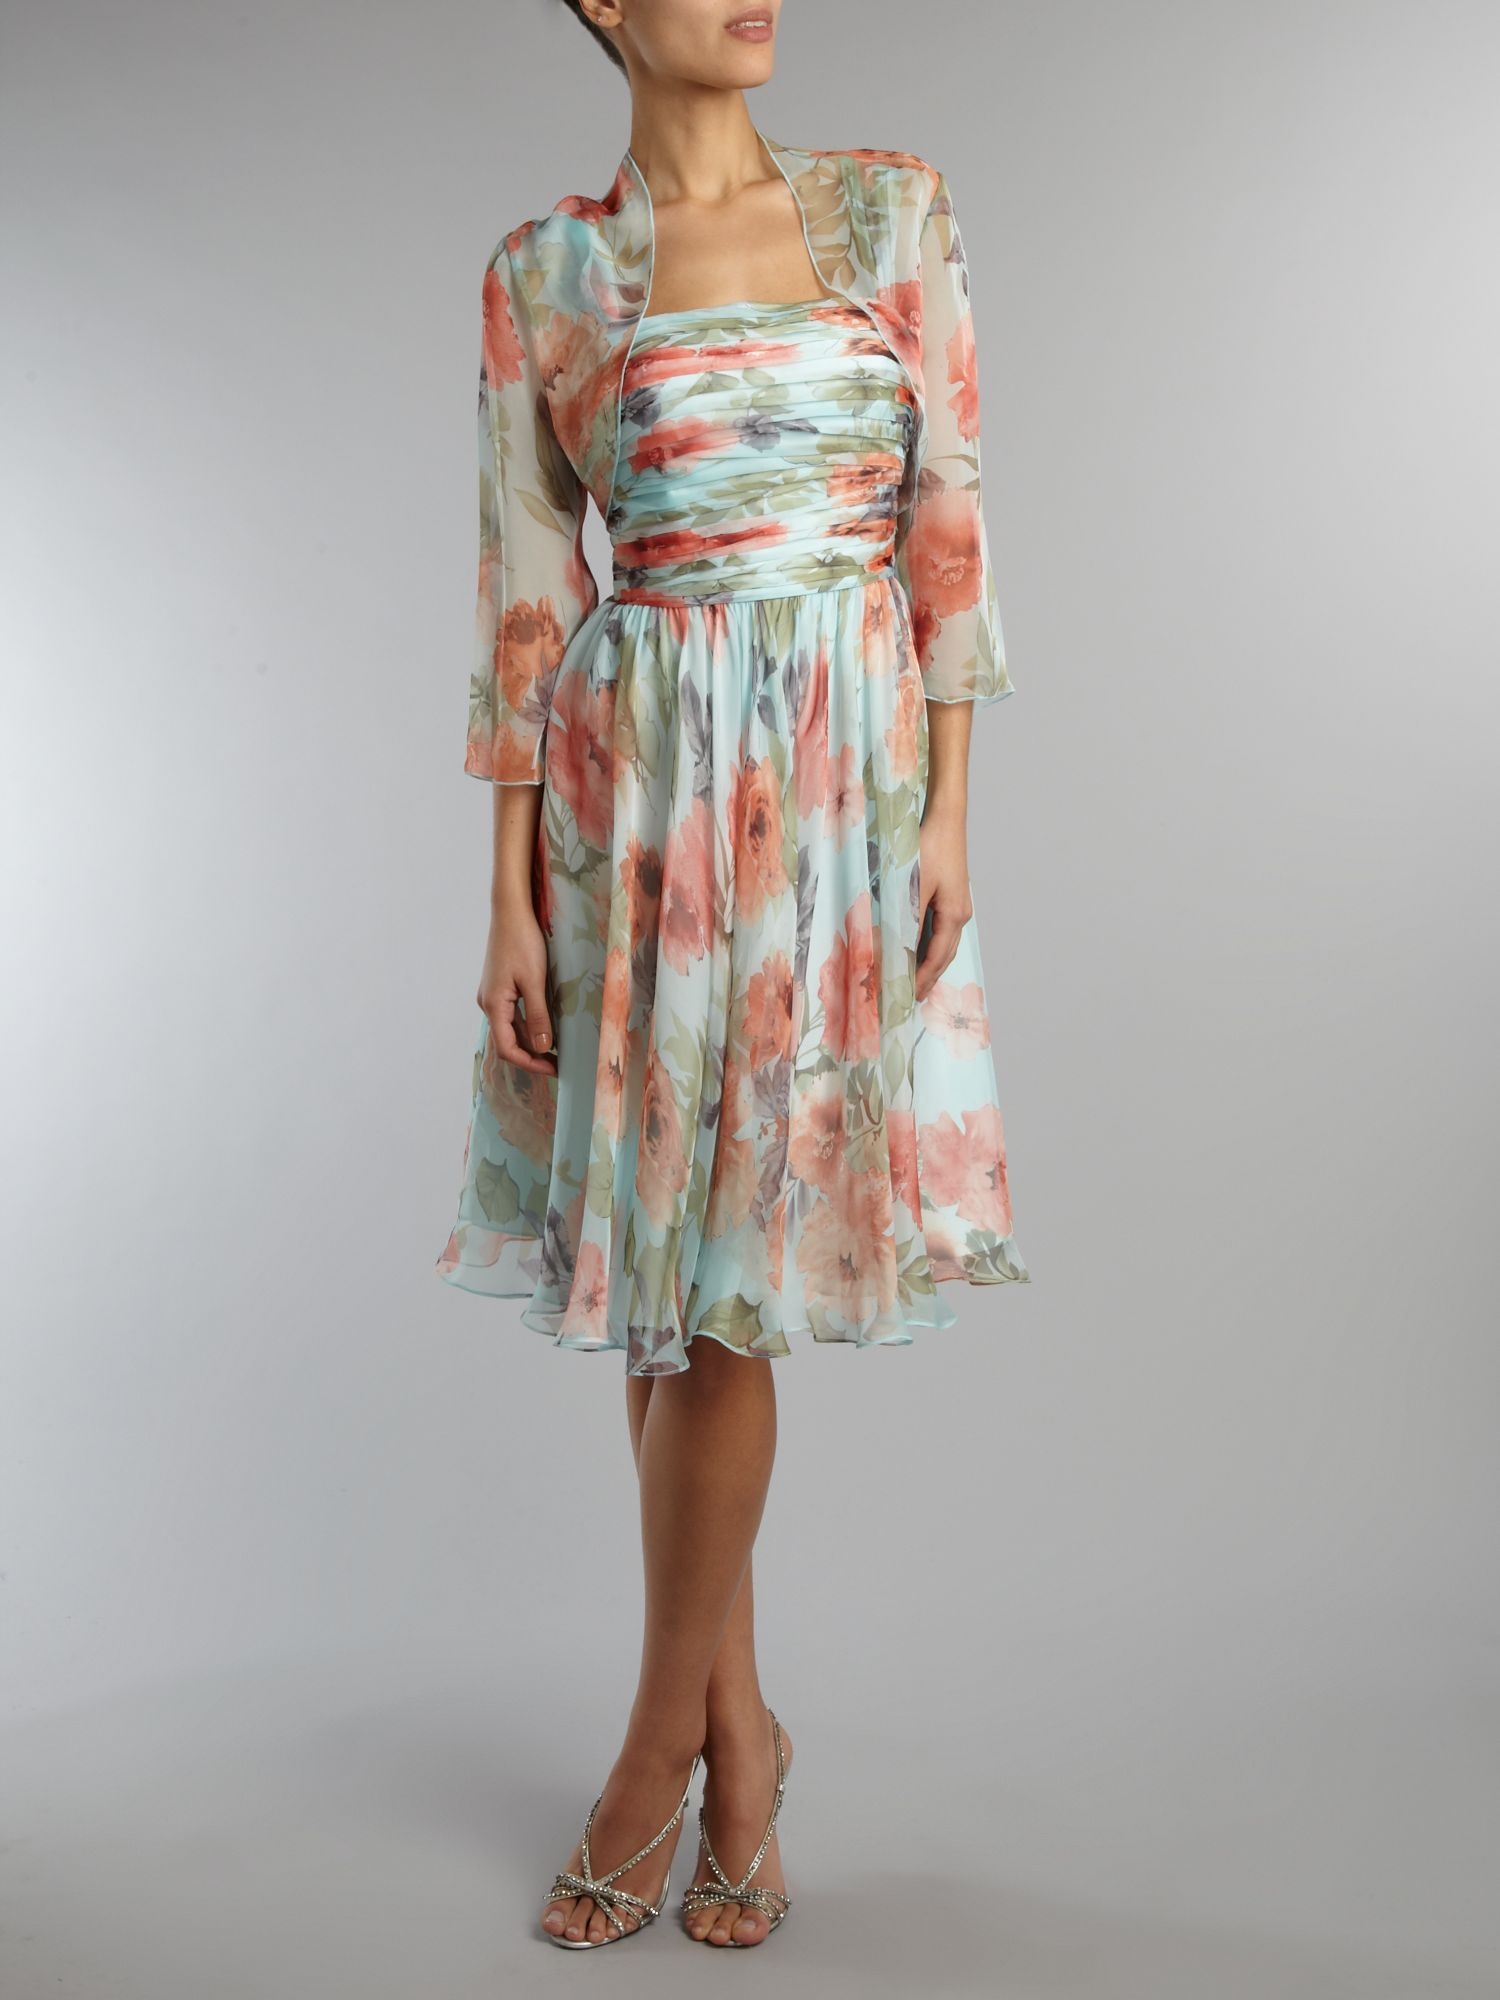 Floral chiffon dress and bolero